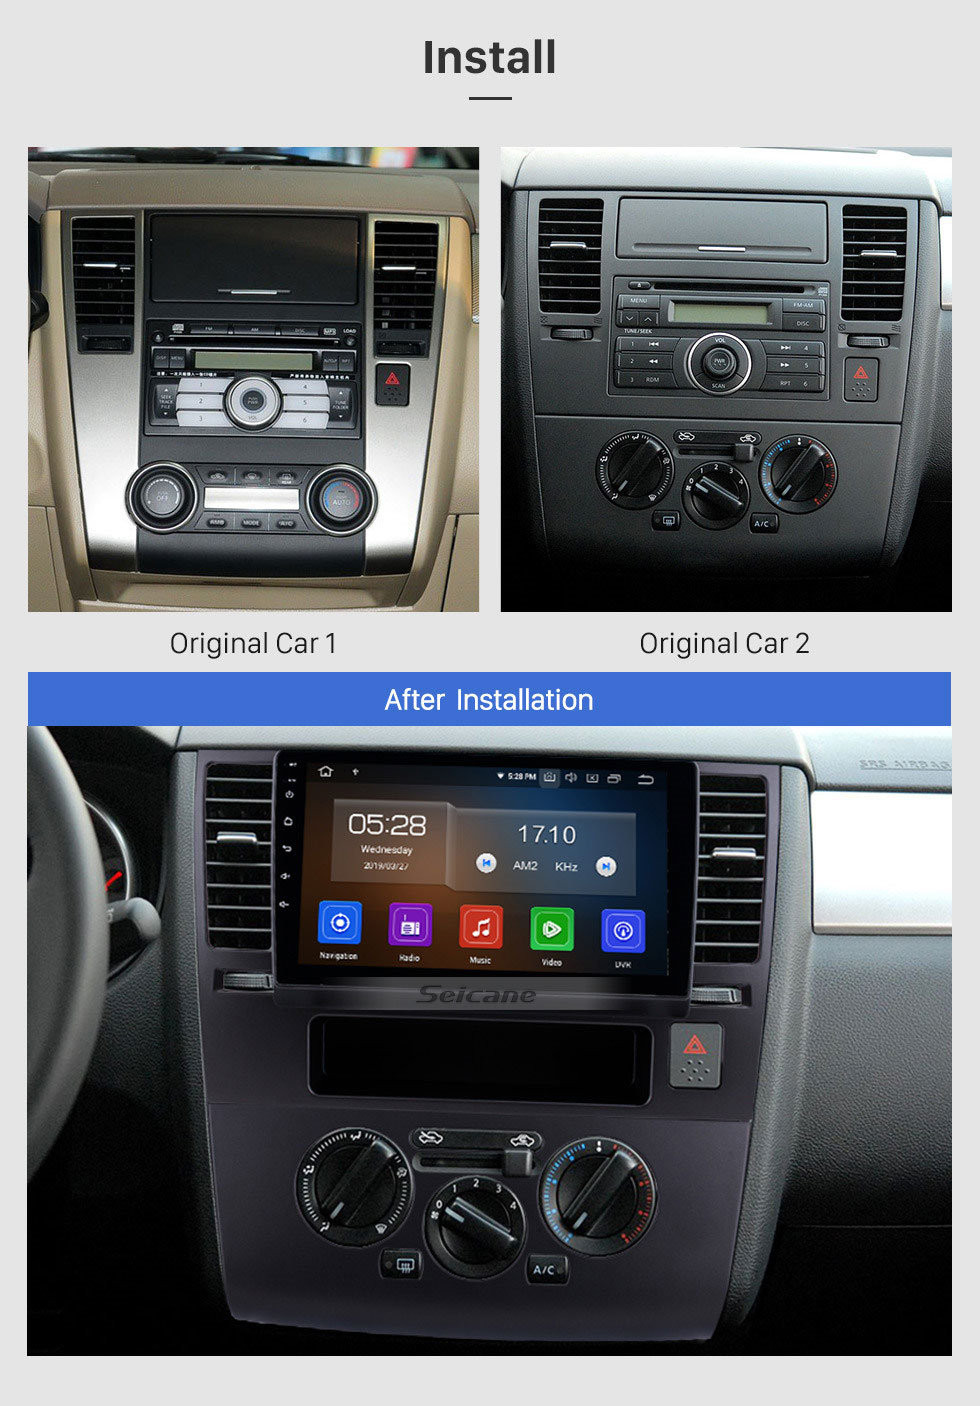 Seicane 9 Inch HD Touchscreen Radio GPS Navigation Android 10.0 2005-2010 Nissan TIIDA Blueooth Music Car Stereo Aux USB DAB+ Steering Wheel Control 4G/3G WiFi